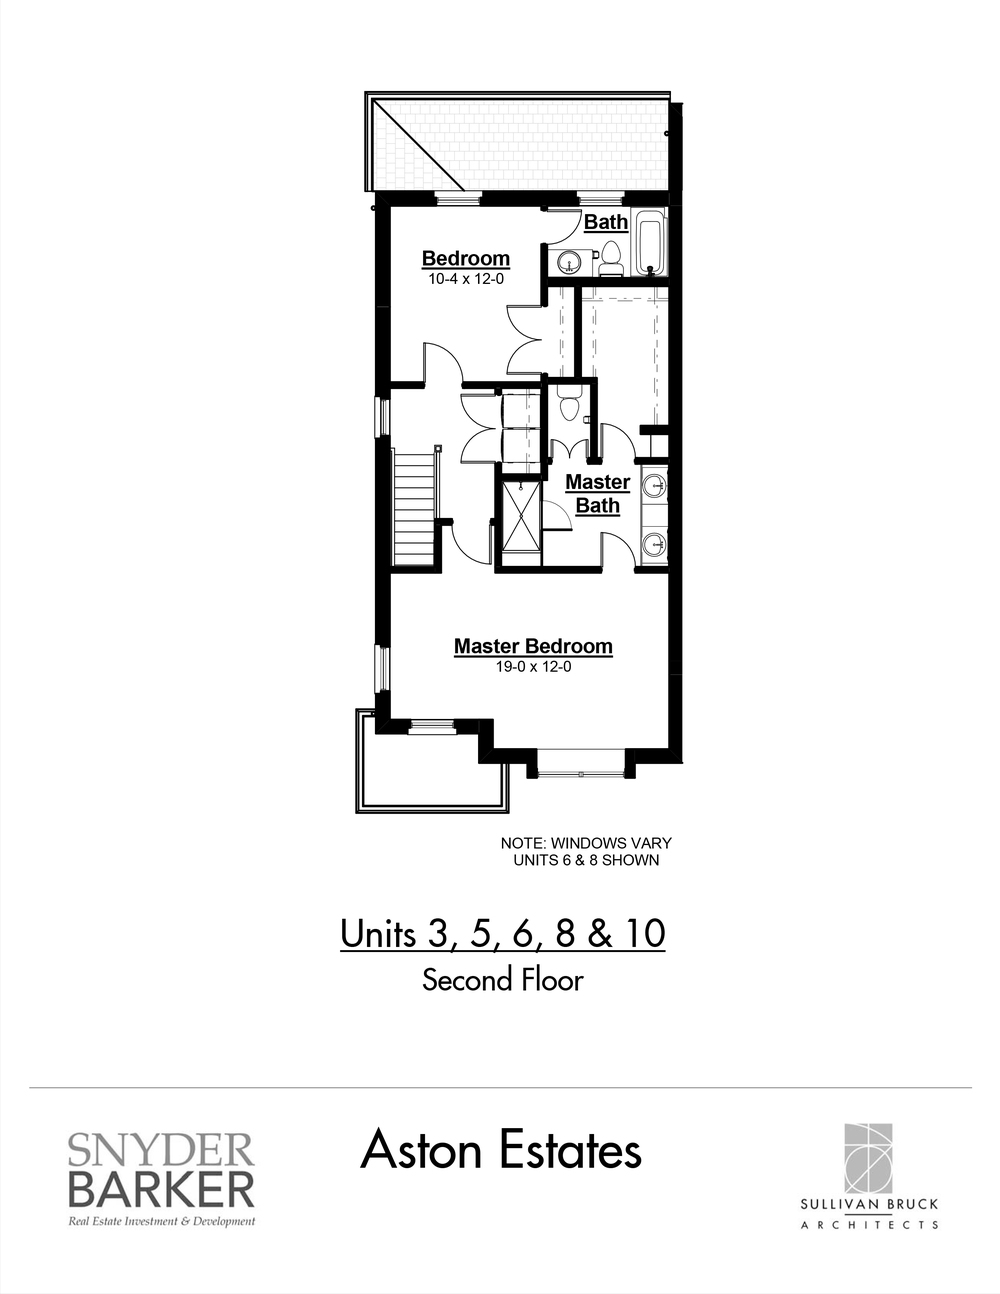 Aston_Estates_Unit_3_5_6_8_10_Second_Floor.jpg